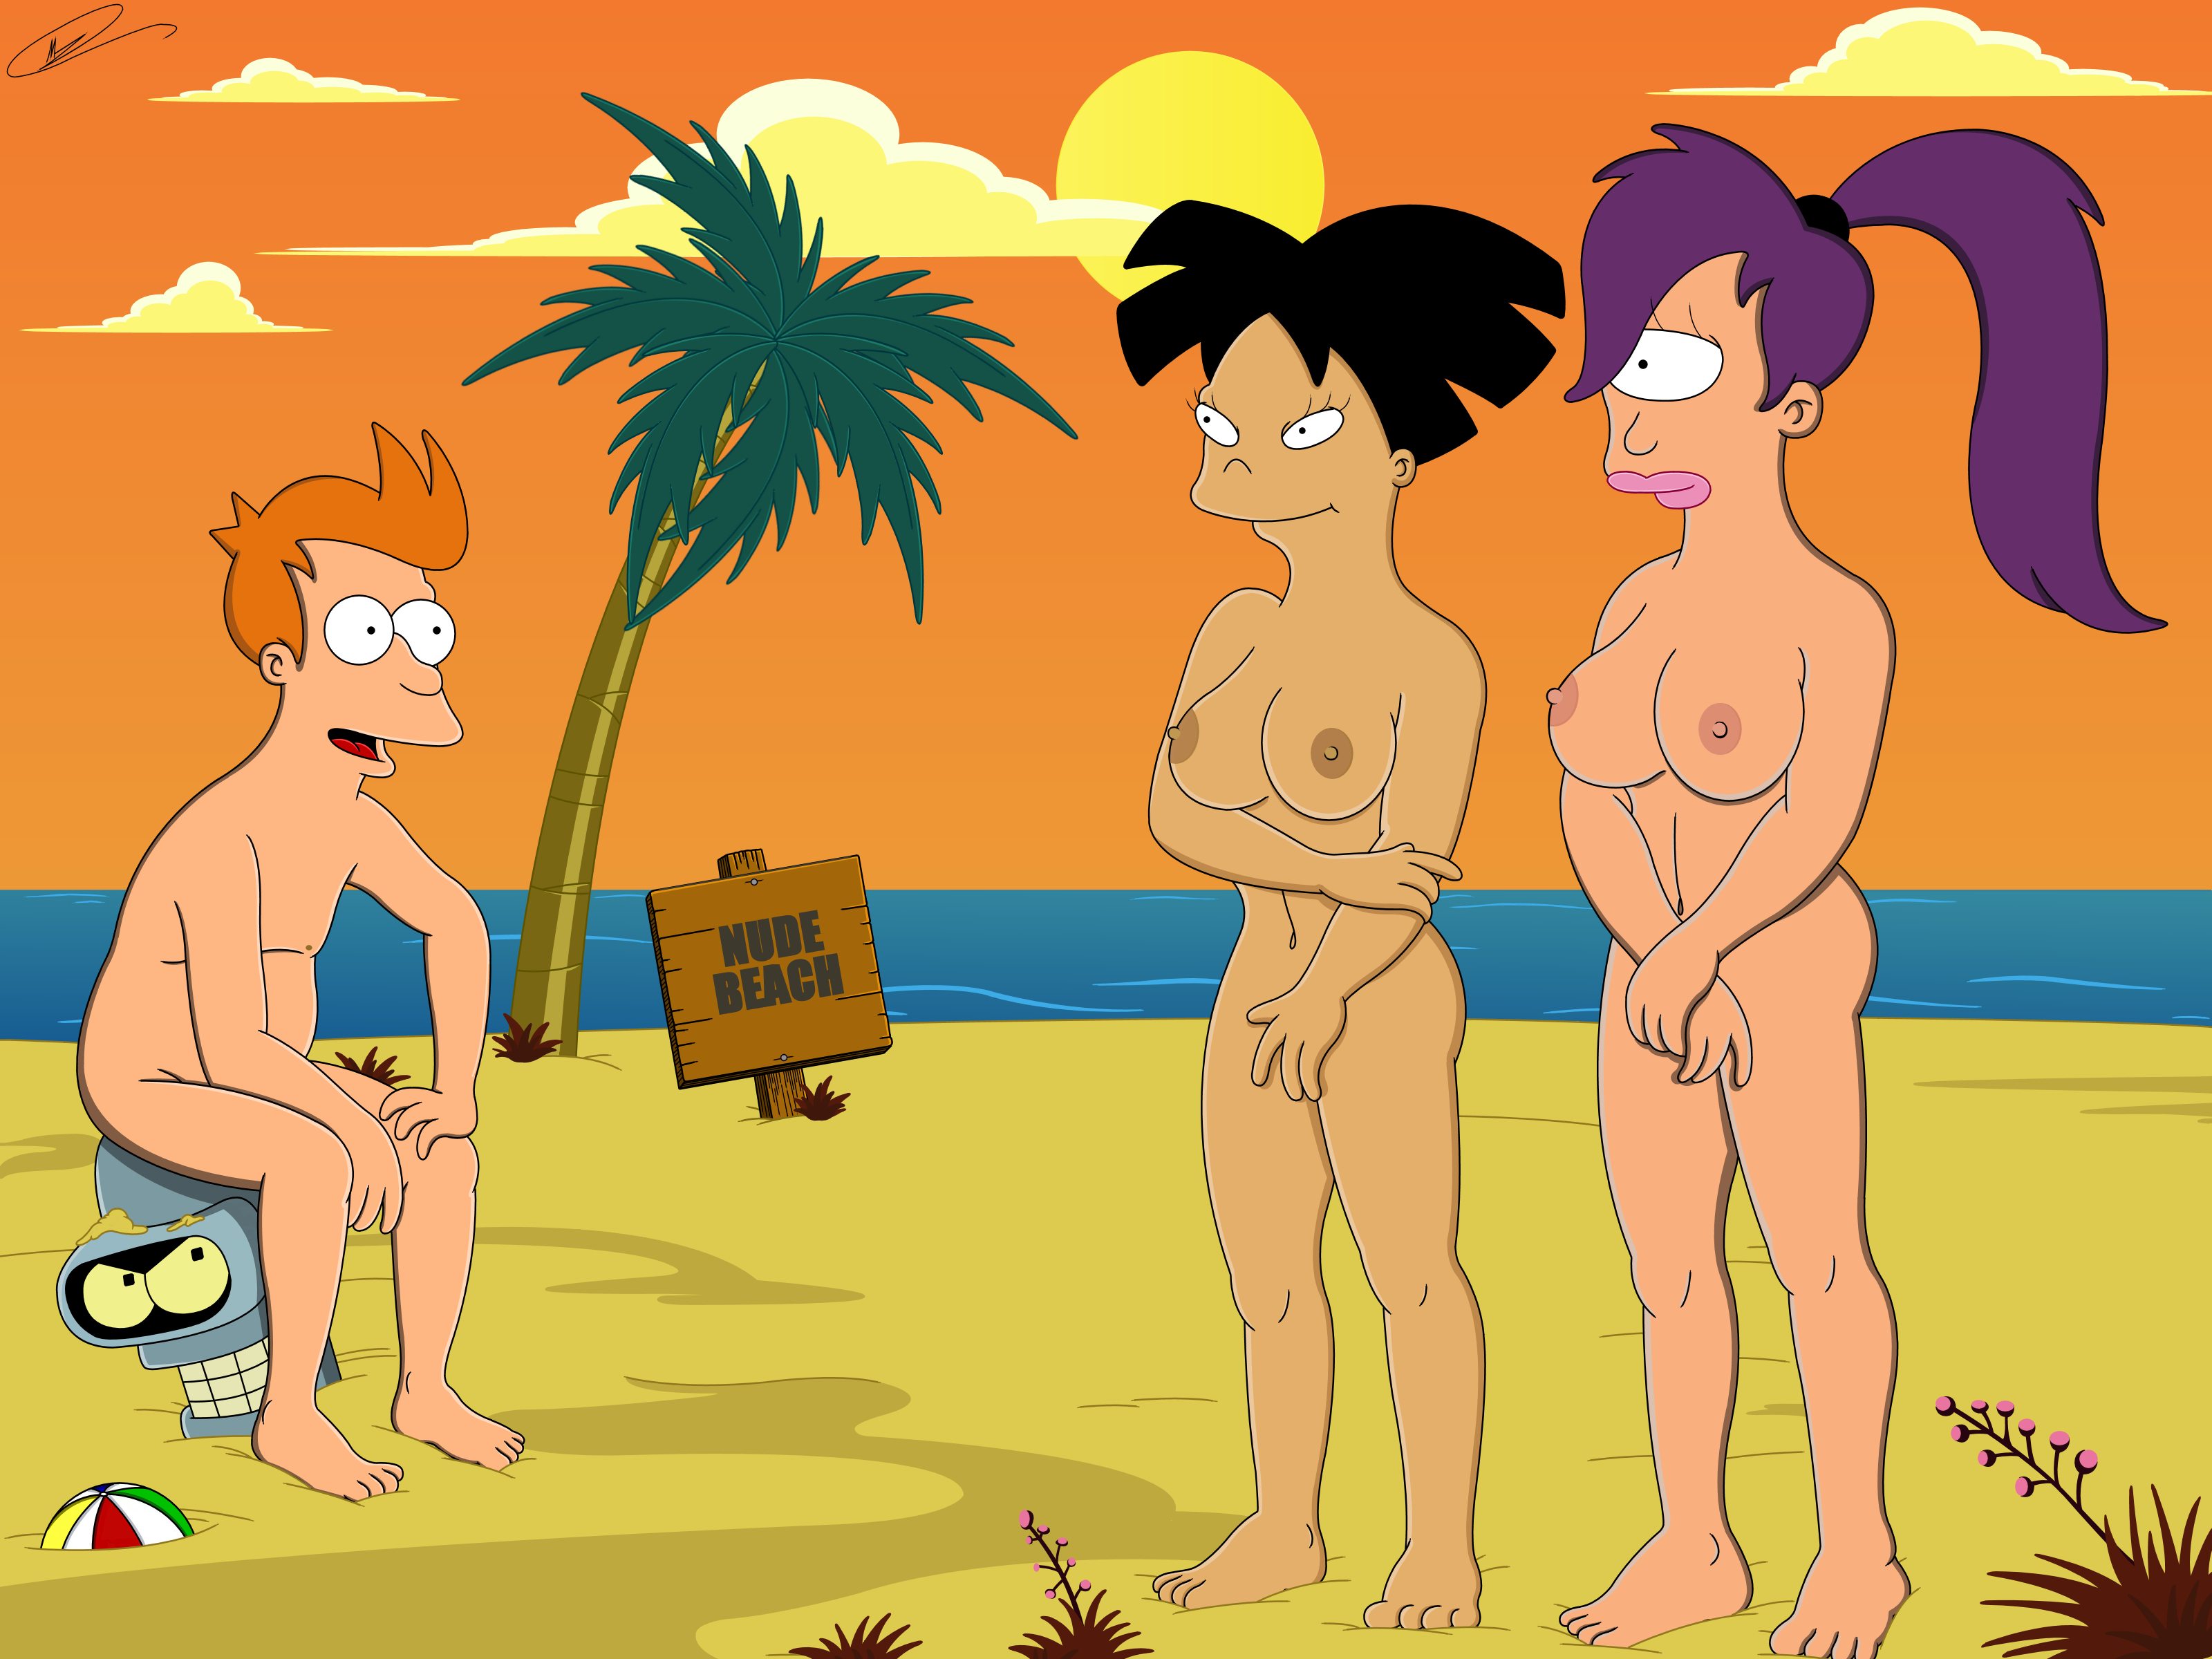 Recommend you Futurama leela and amy nude opinion you